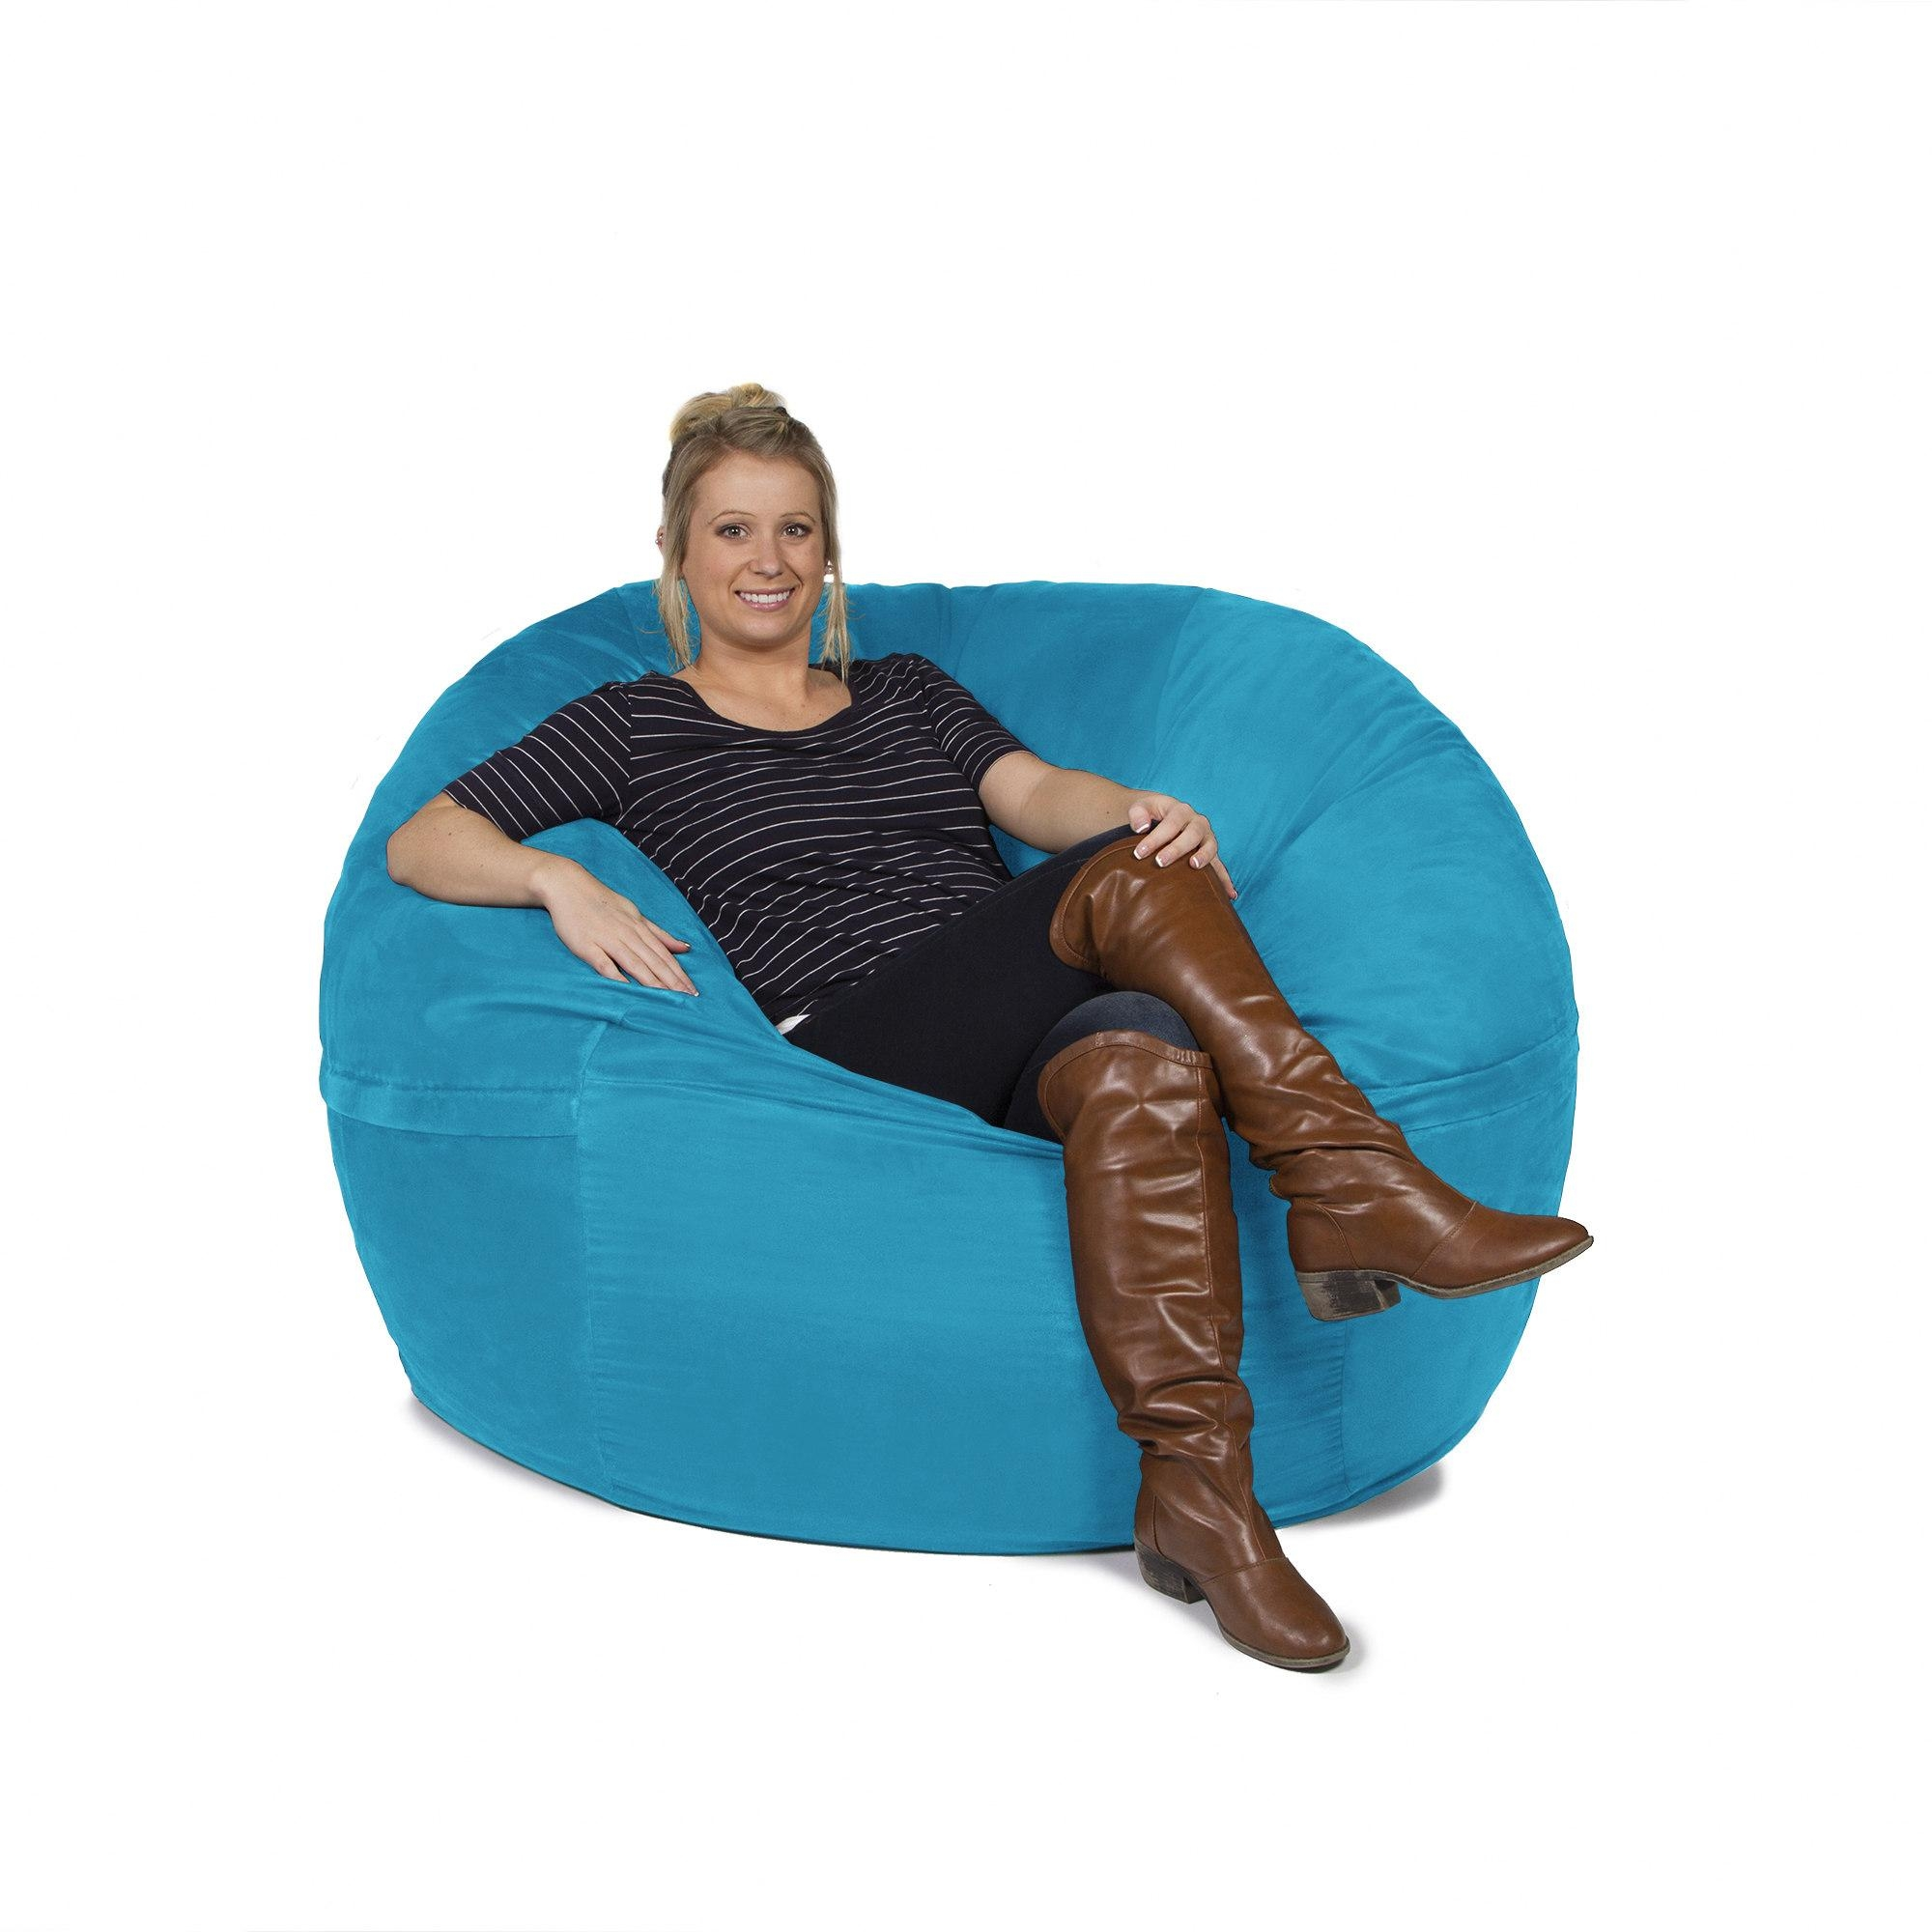 giant bean bag 20 best collection of bean bag chairs sofa ideas 30133